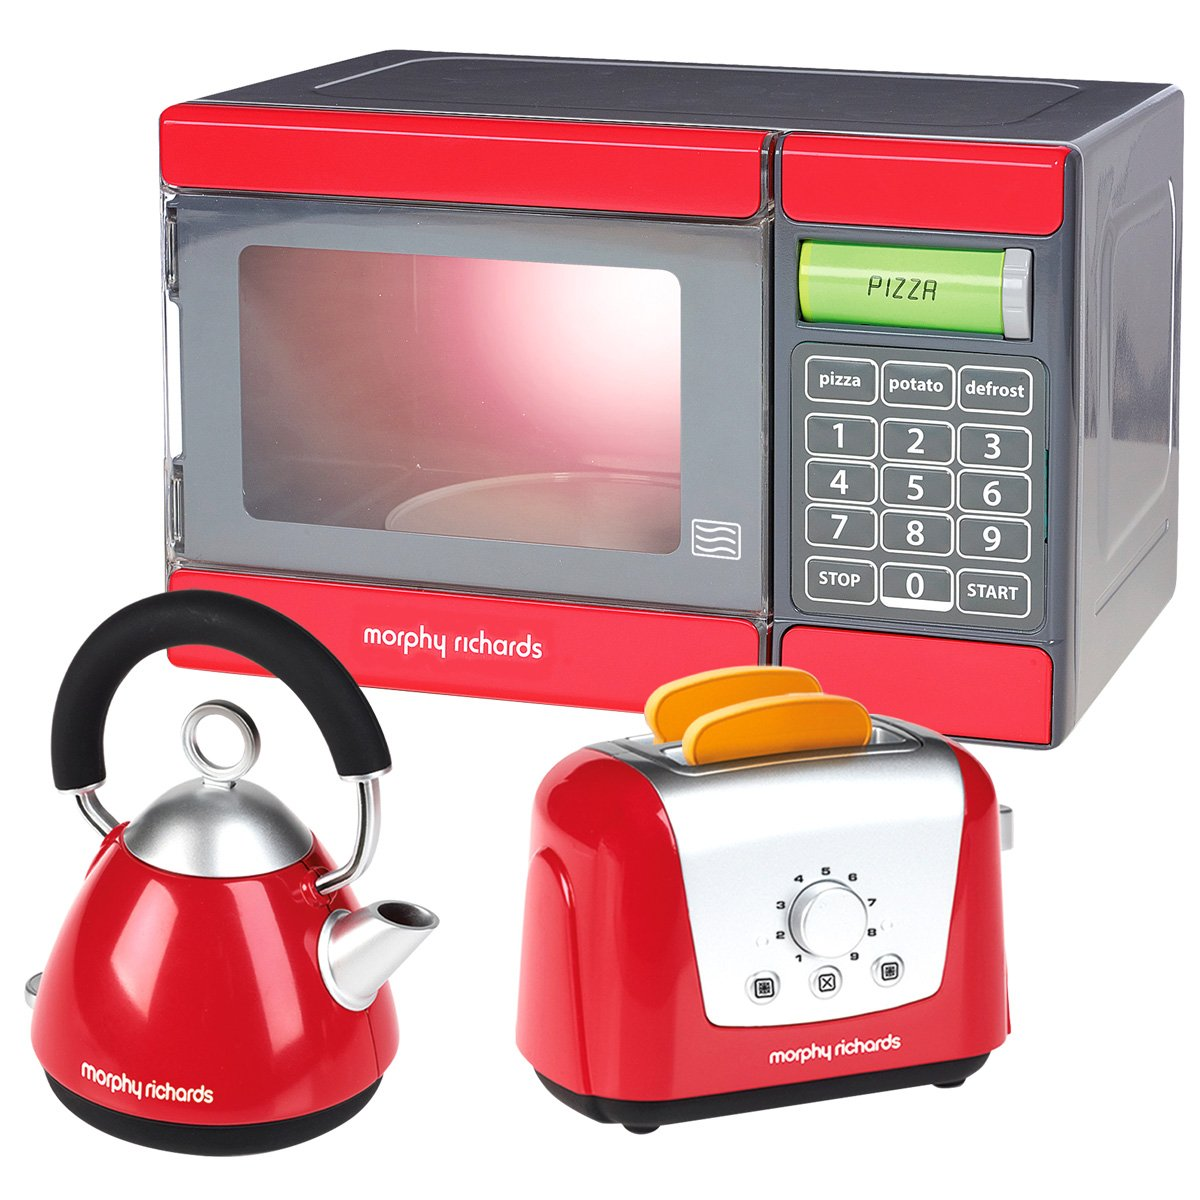 Casdon Little Cook Morphy Richards Toy Kitchen Set Red Microwave //Toaster //Kettle Educational Toy Age 3-8 Years by Charles Bentley